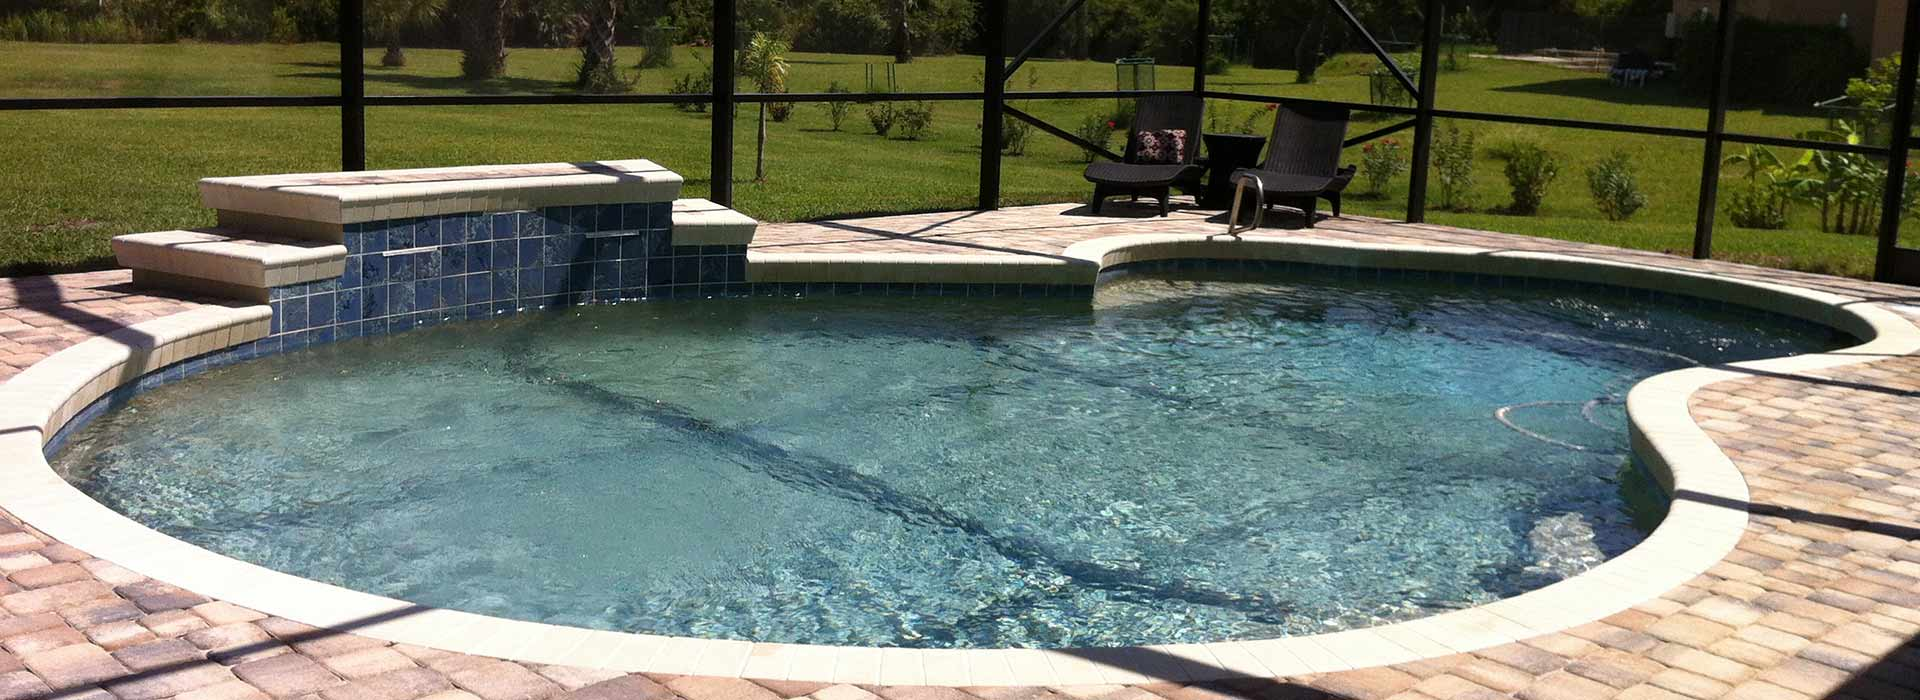 Swimming Pool Center Melbourne FL Pool Professionals ...